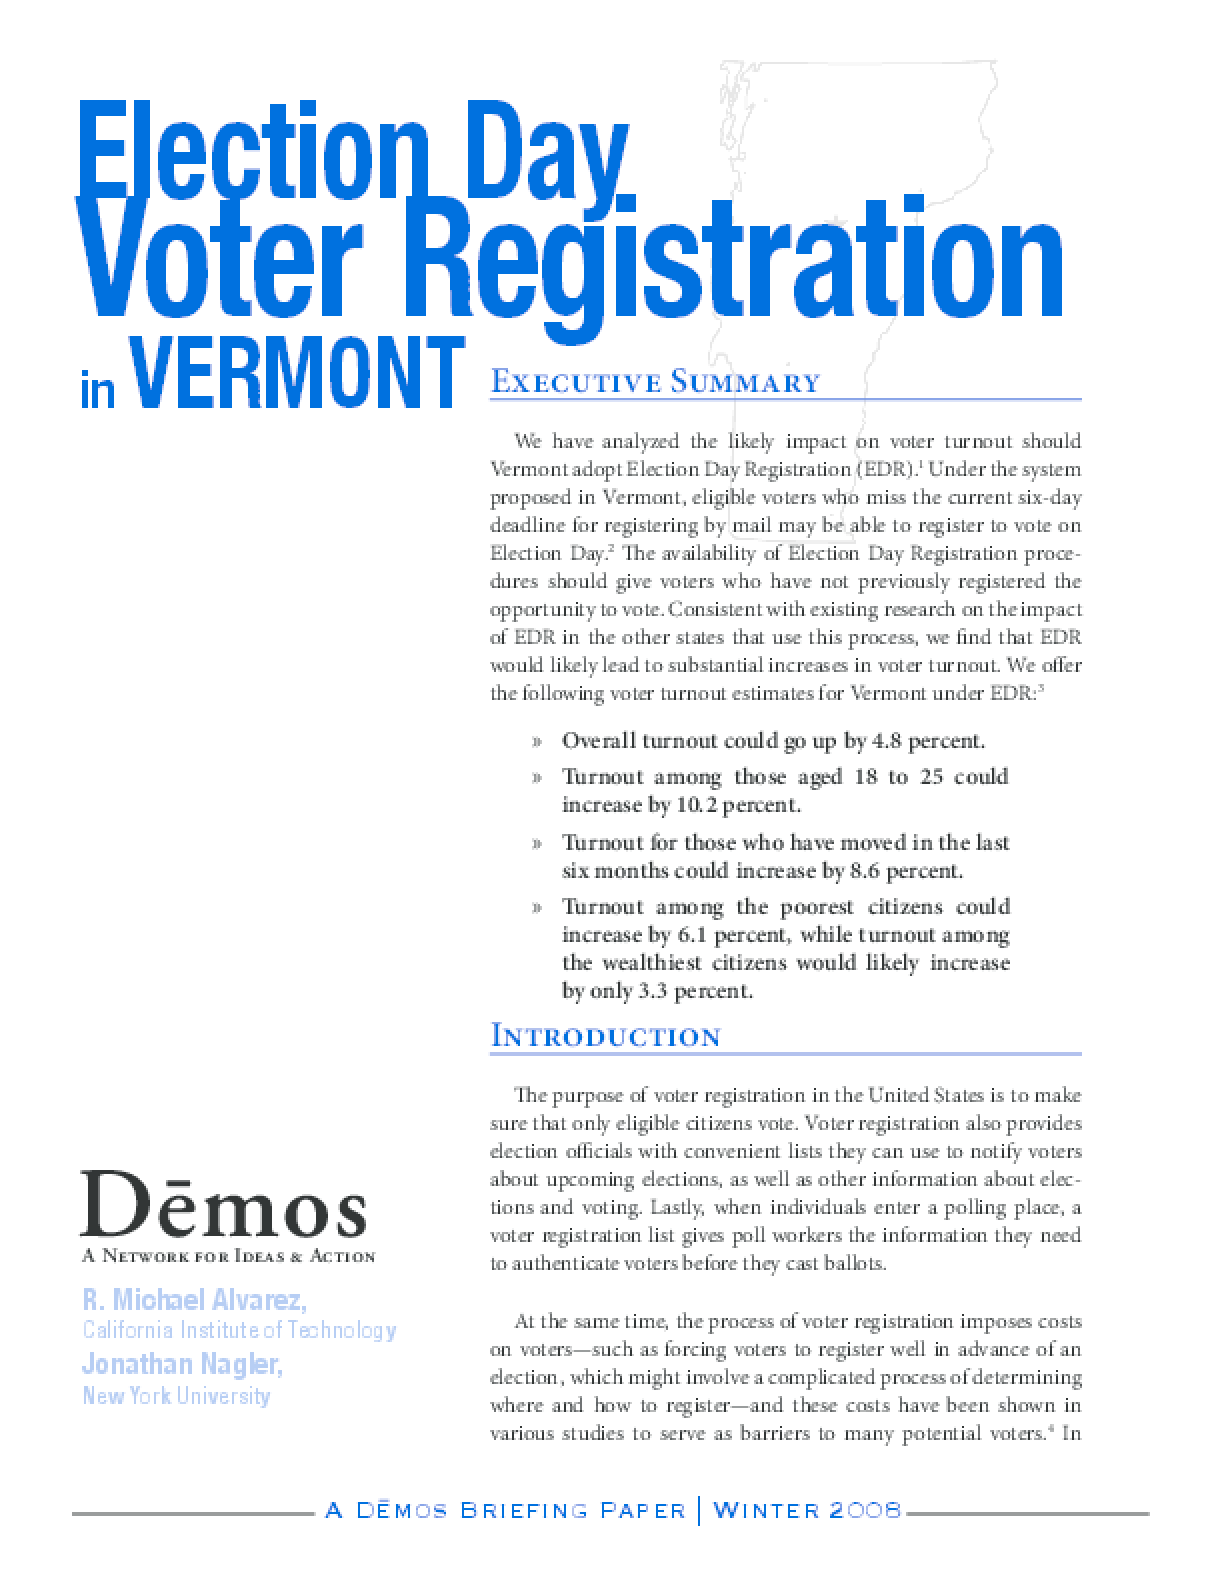 Election Day Voter Registration in Vermont